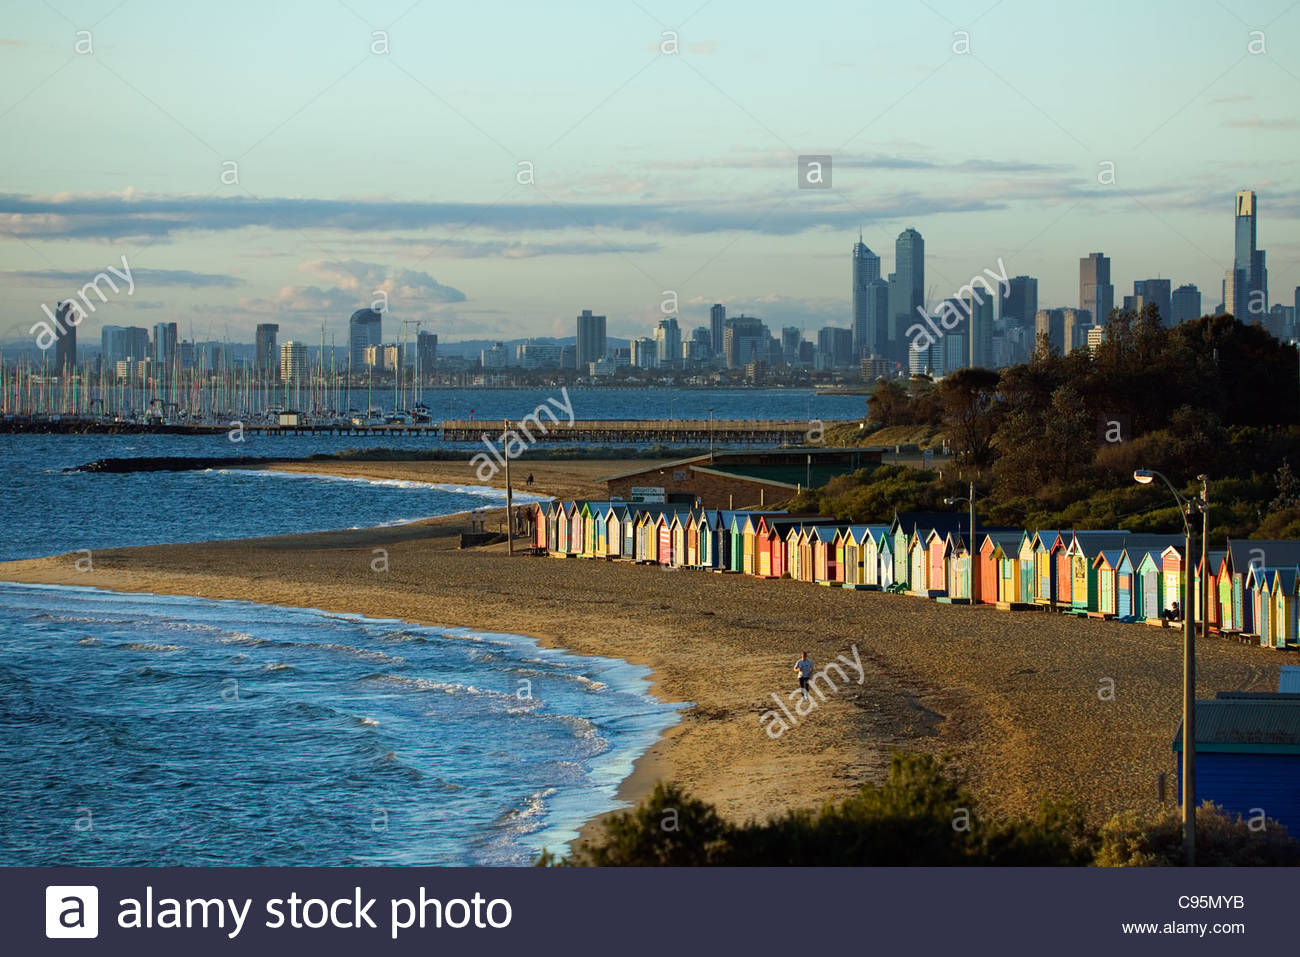 View of beach huts at Brighton Beach with city skyline in 1300x957